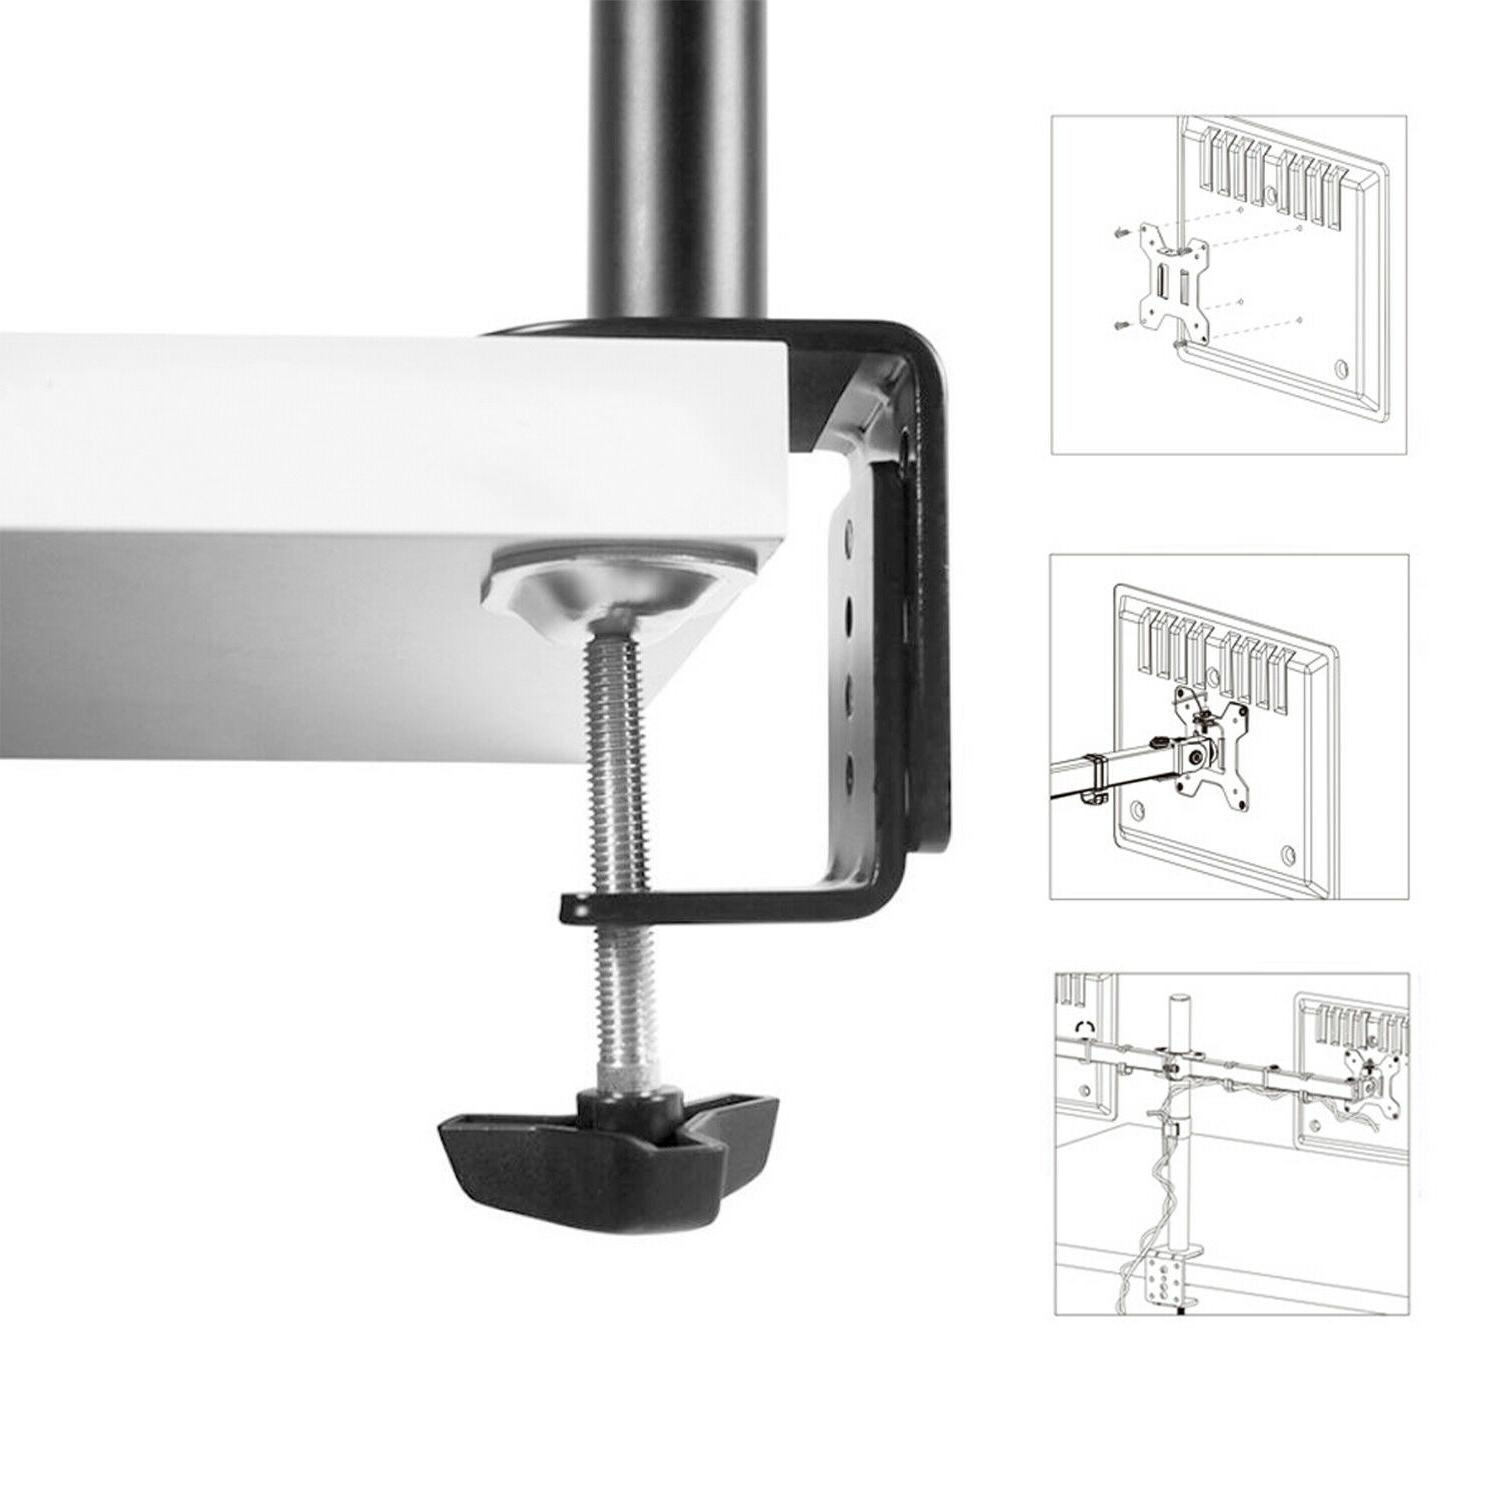 New Monitor Mount Computer TV Screen Bracket Stand 13-27''